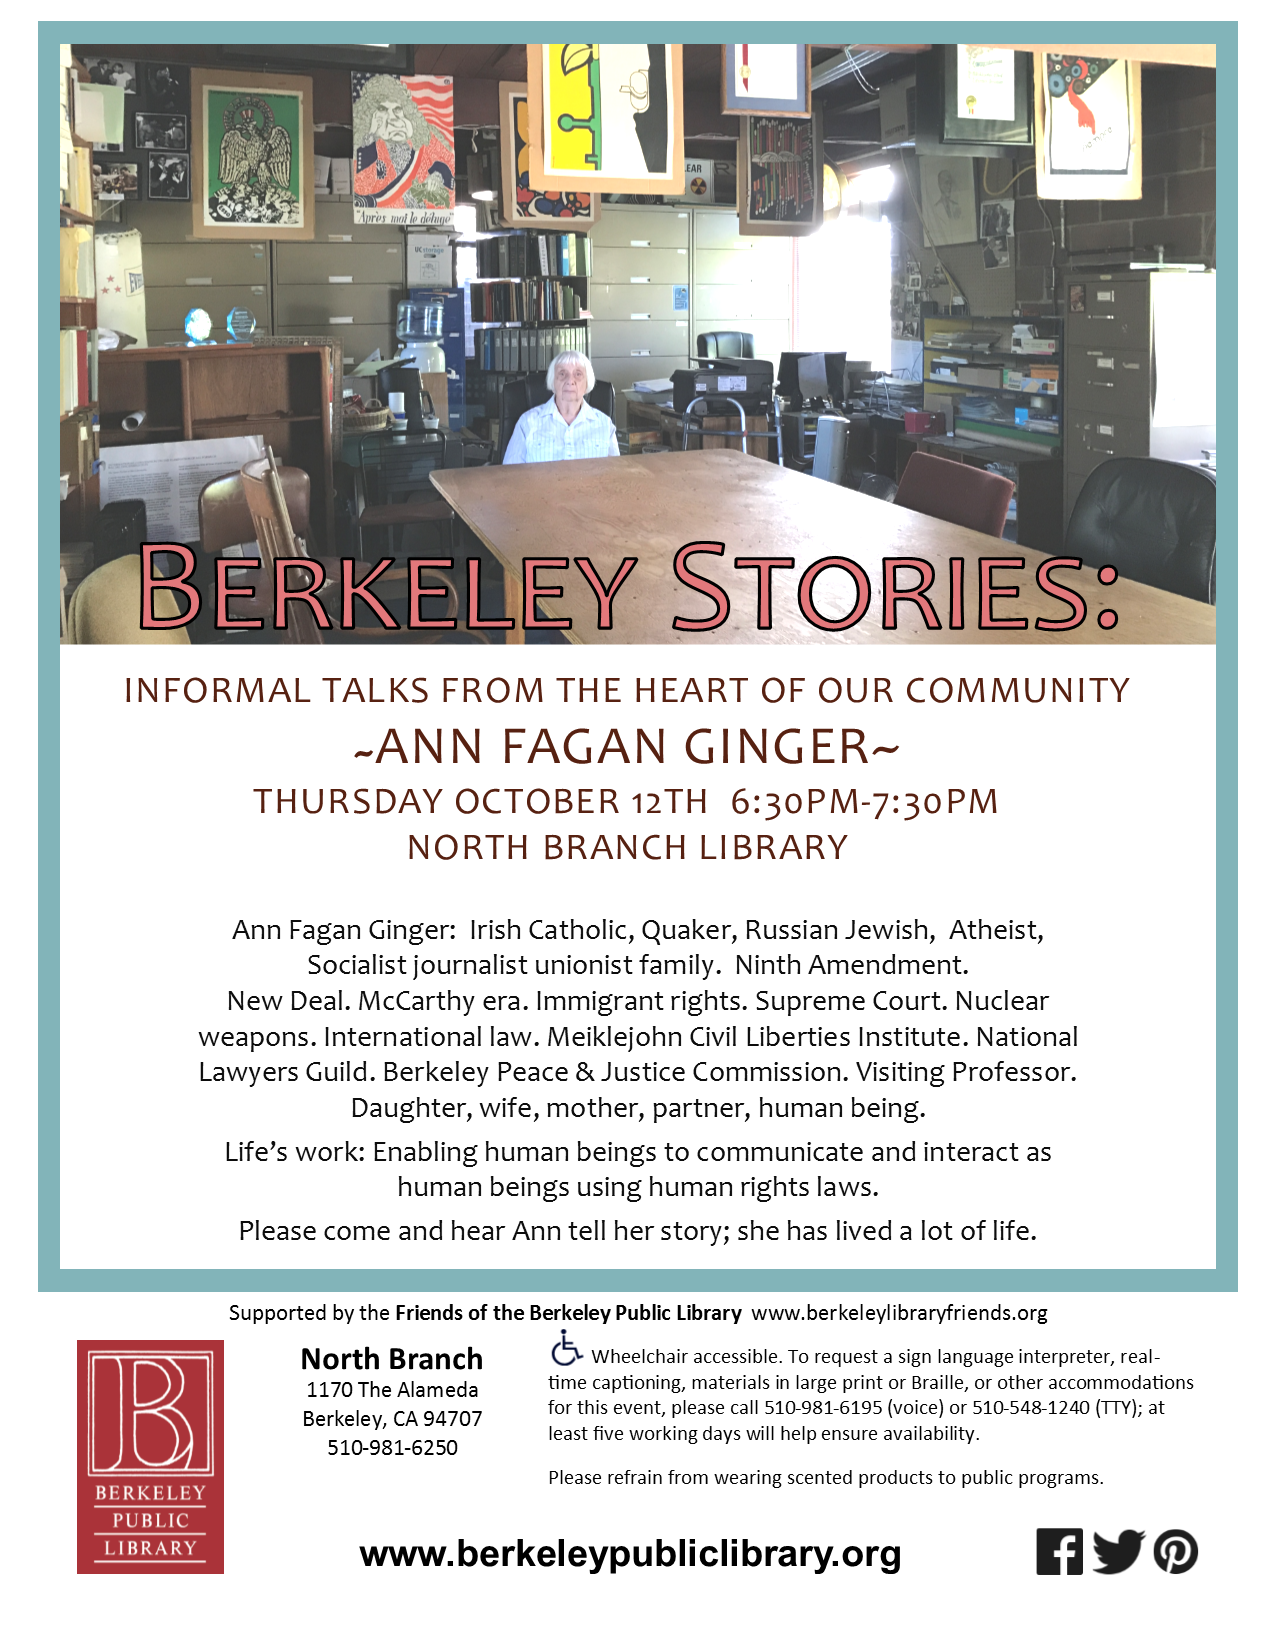 Berkeley Stories: Informal Talks from the Heat of the Community. Ann Fagan Ginger